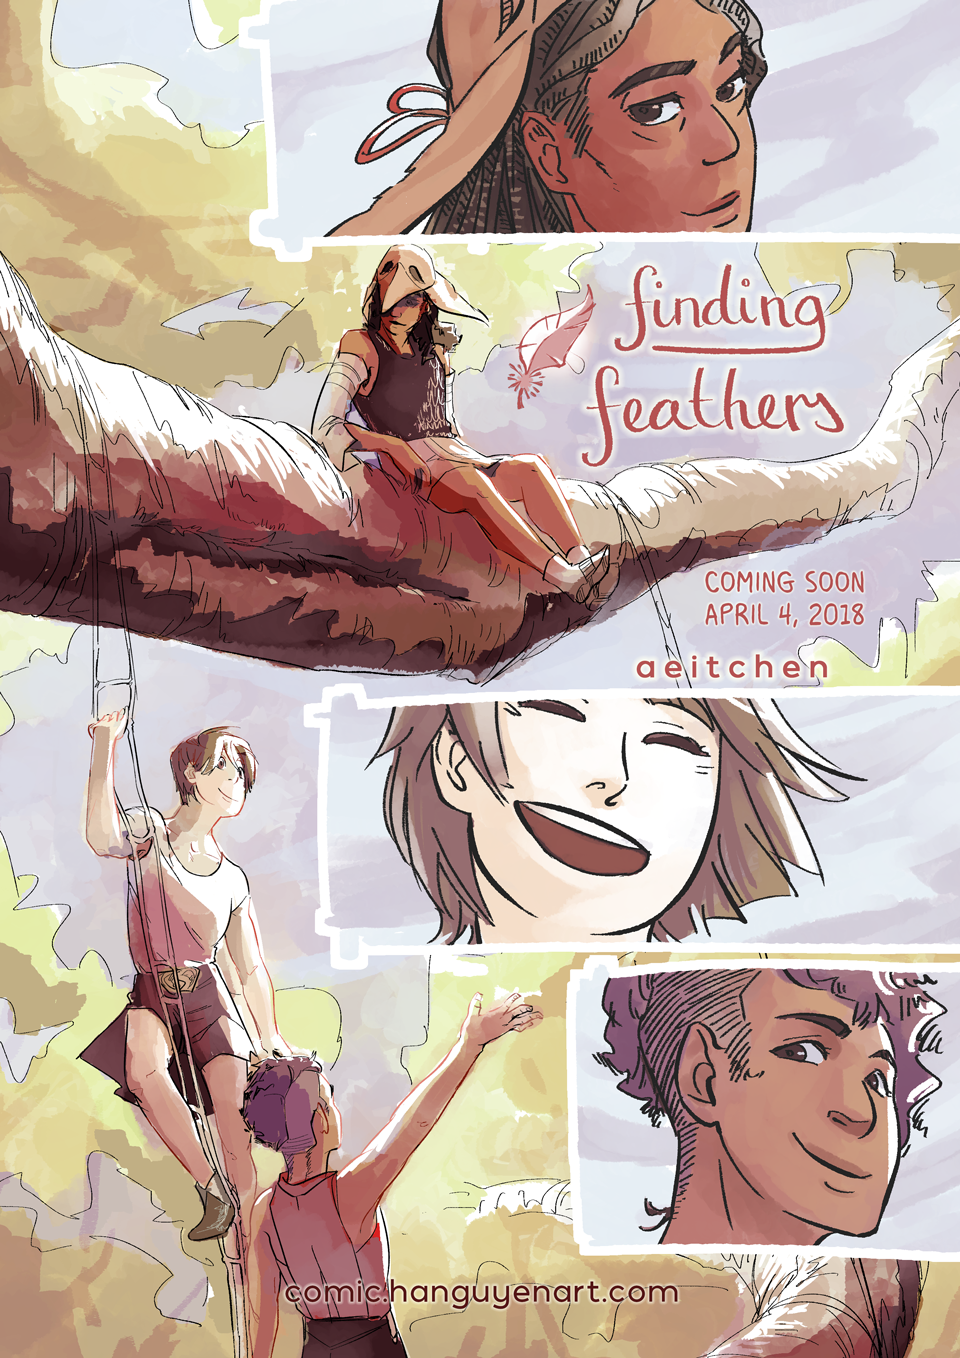 Finding Feathers webcomic will begin serialisation from April 4, 2018